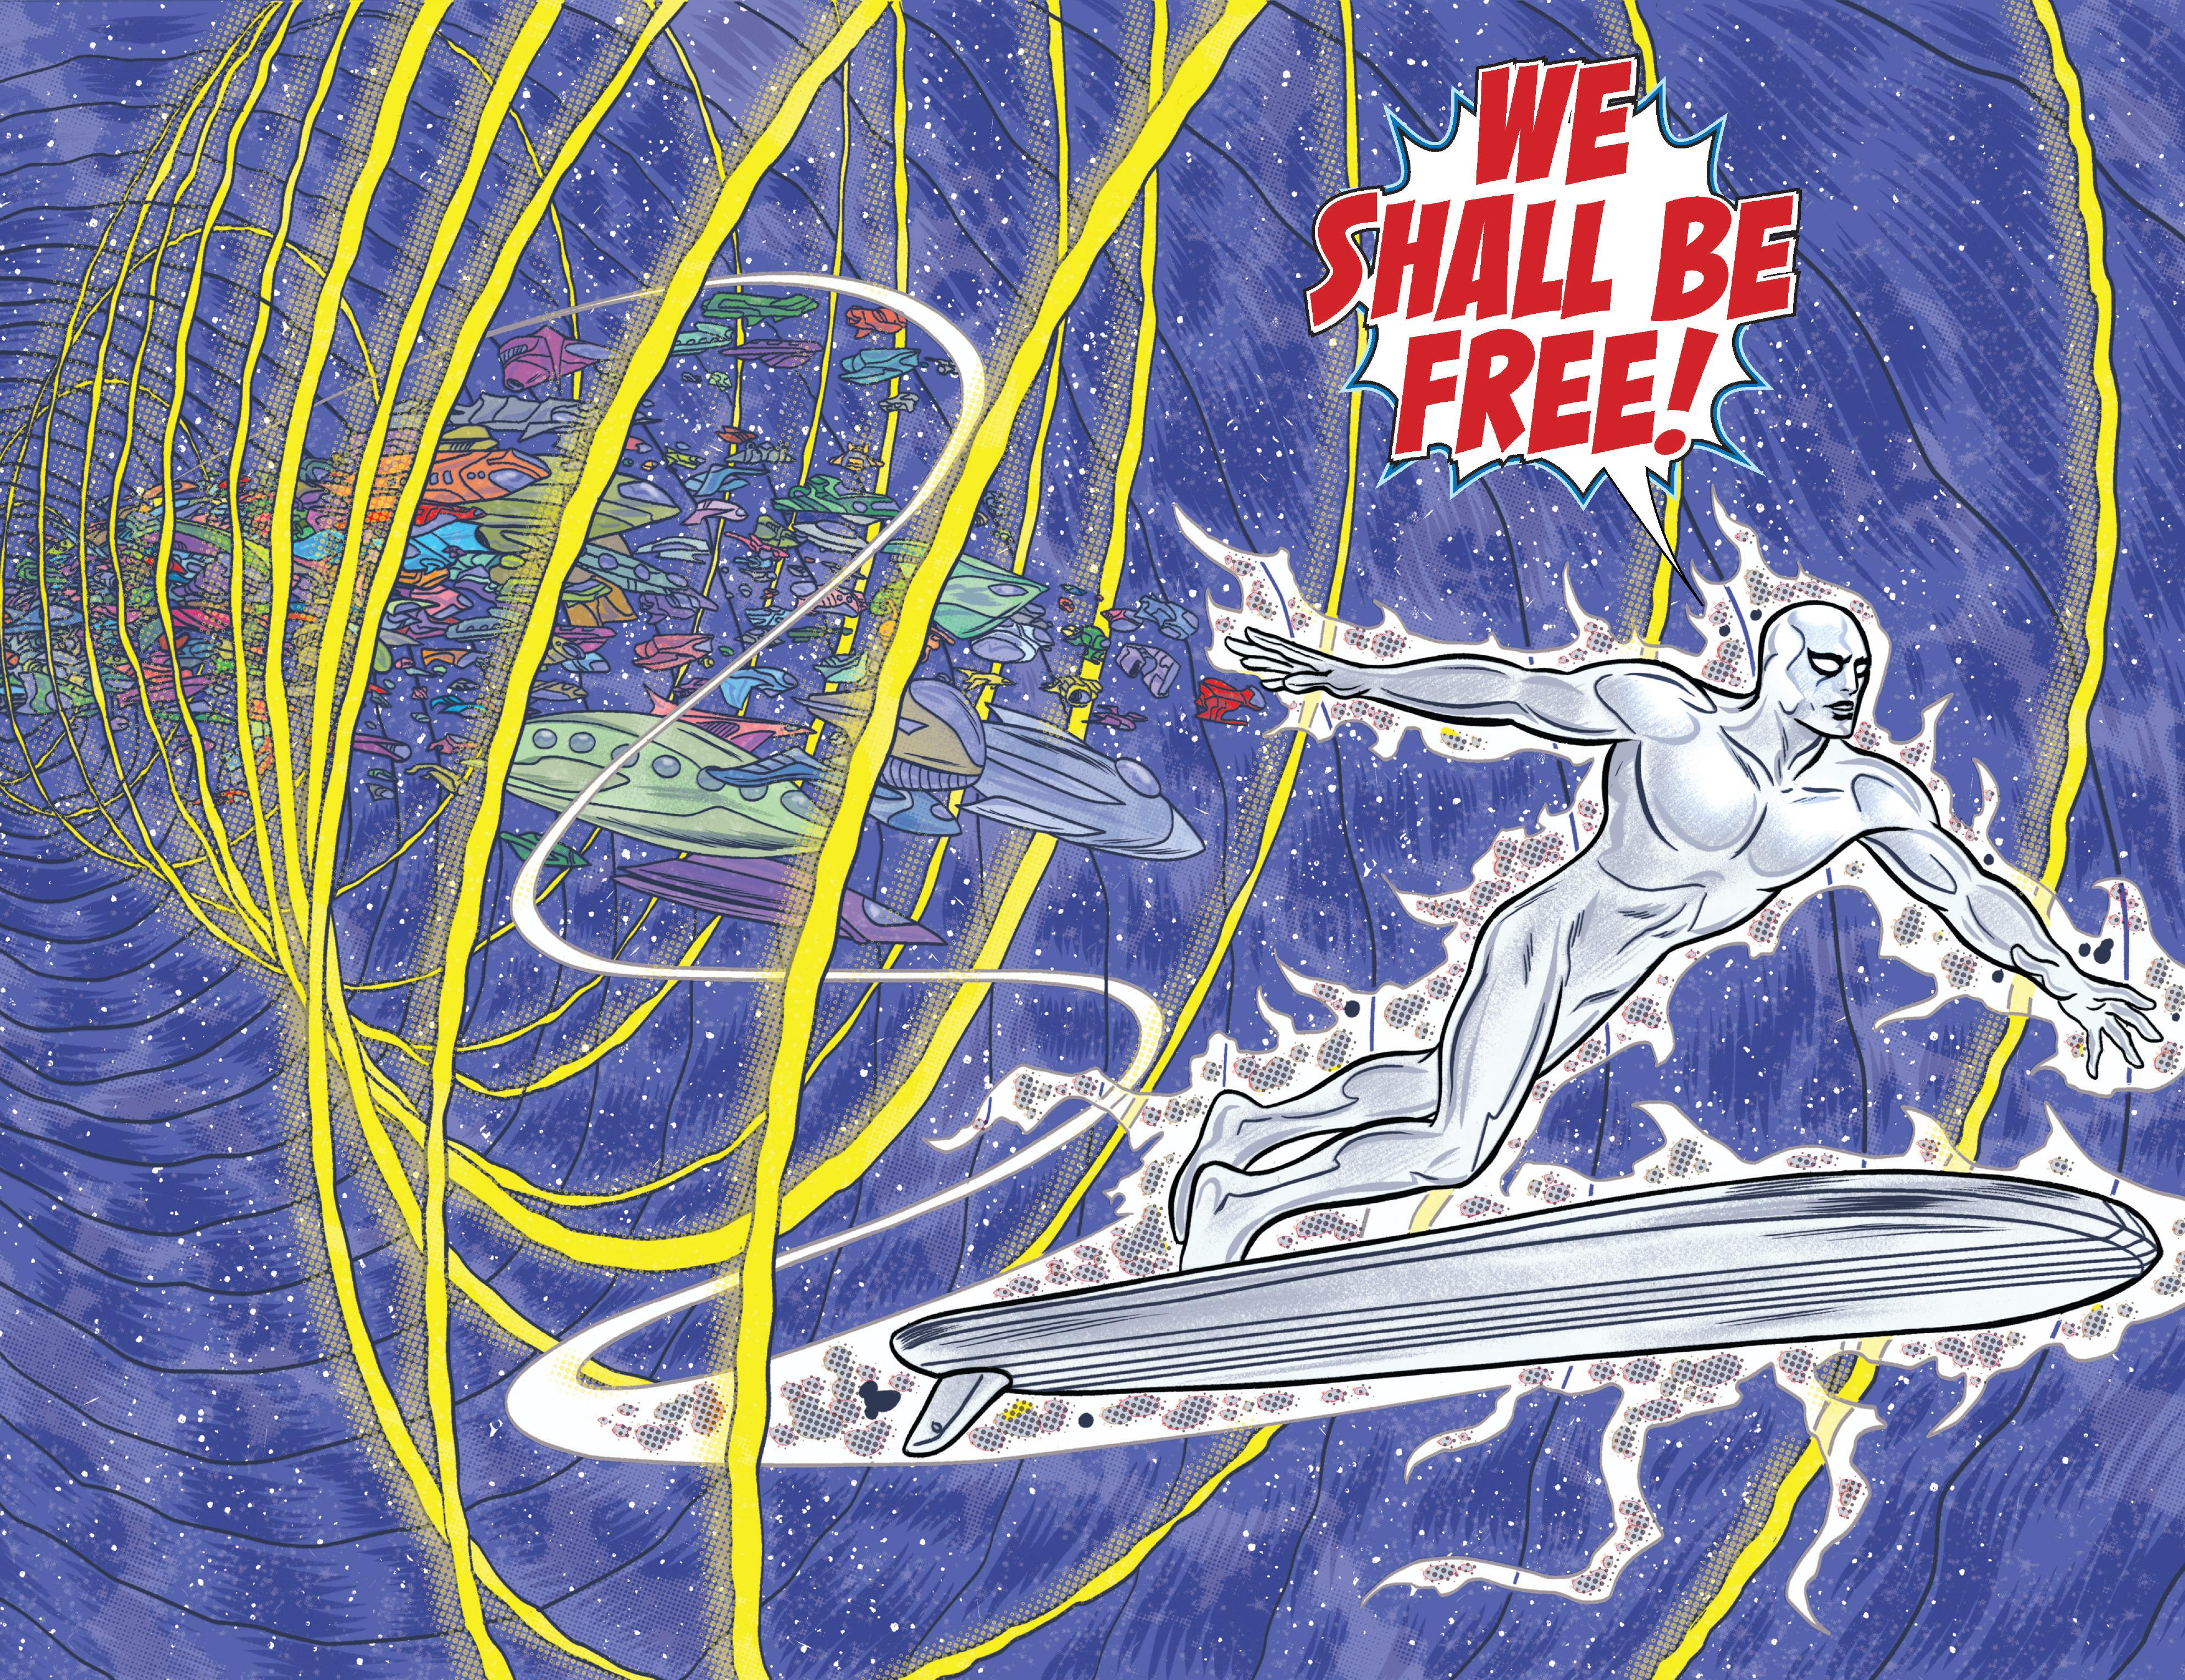 Silver Surfer Last Days review